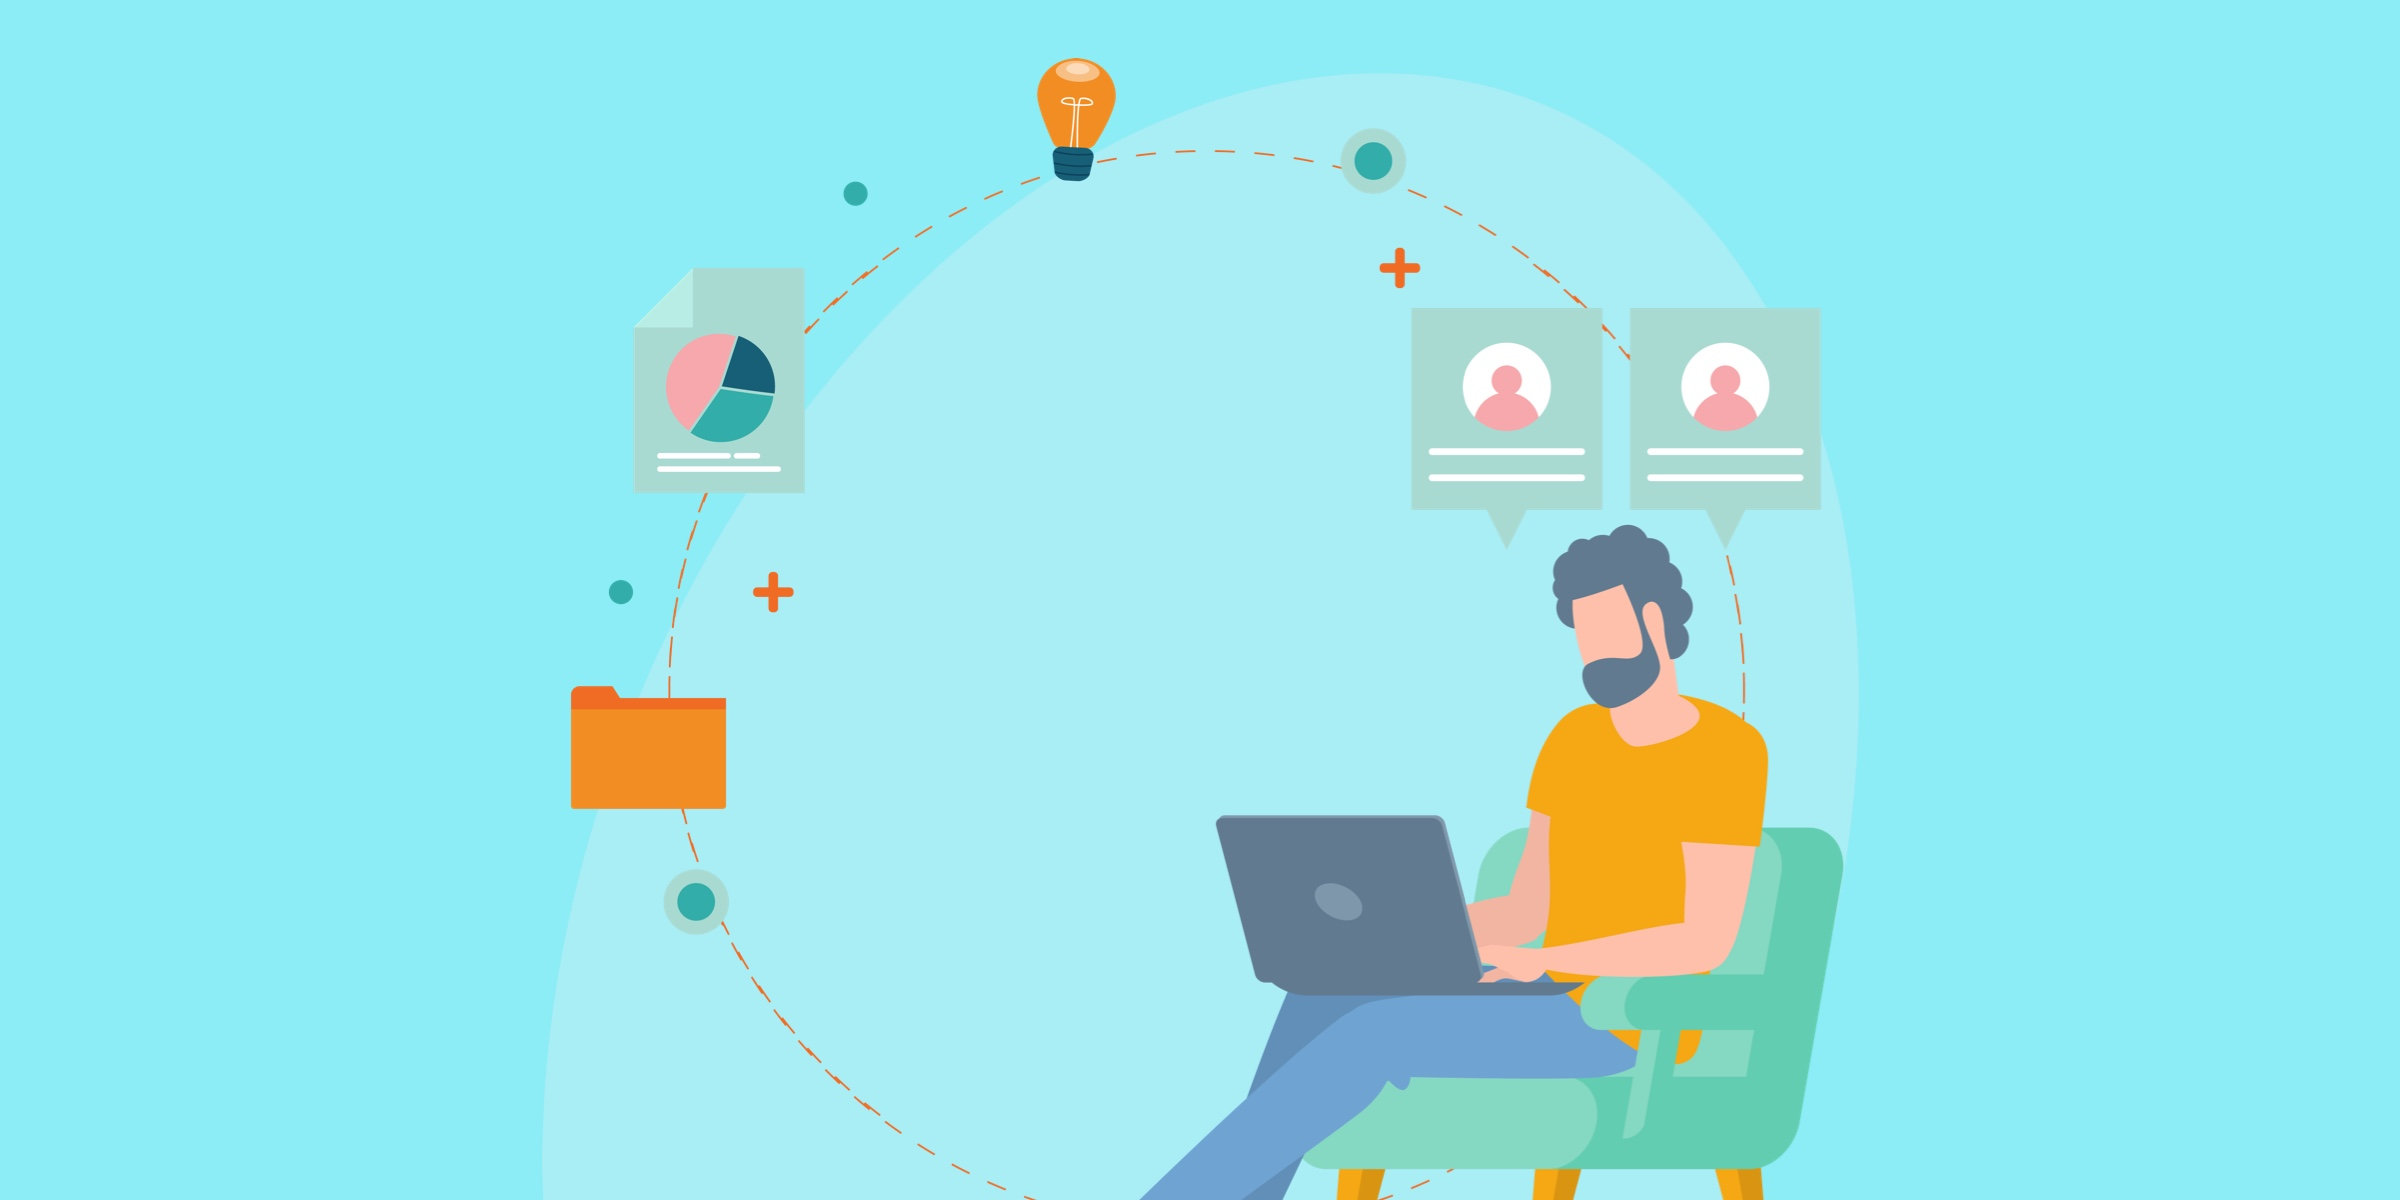 Tips for Keeping Up Innovation While Remote Working